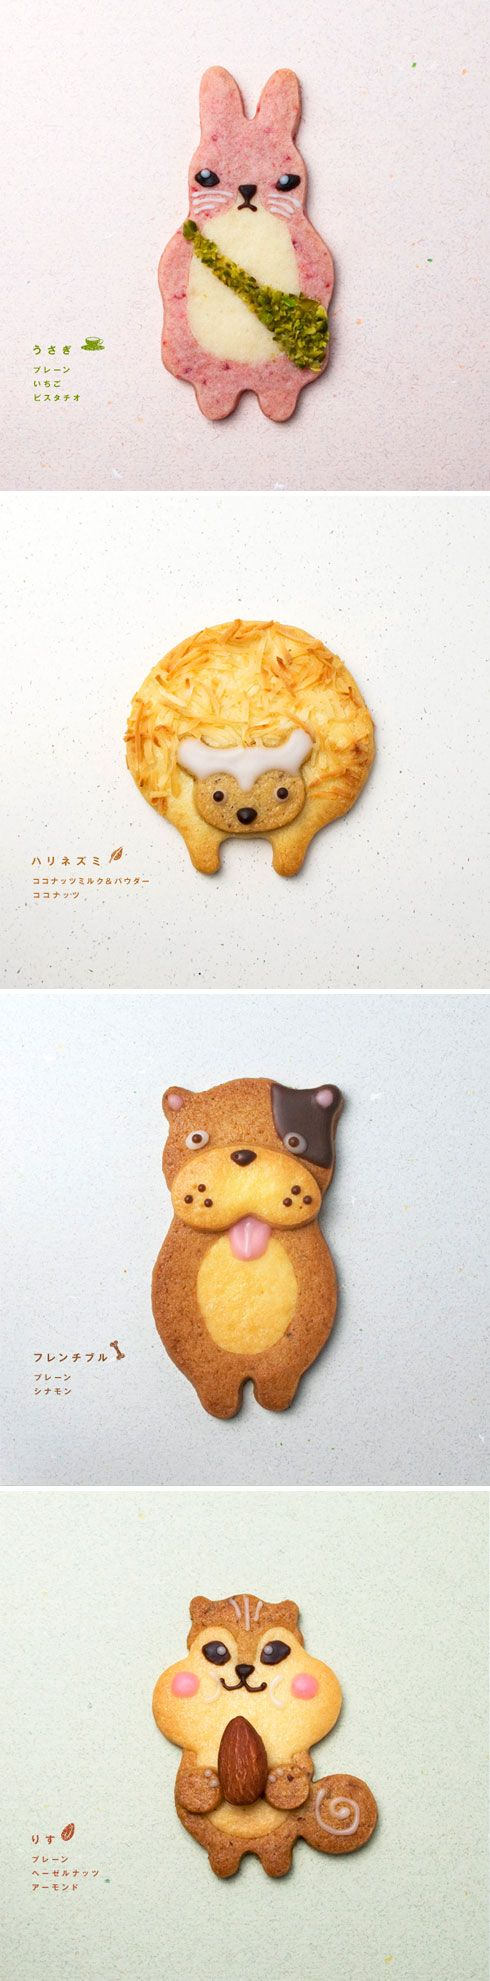 These adorable cookies could be made from sugar cookie and gingerbread dough, and the photo used as a model for shaping and forming. There is no recipe on the link.